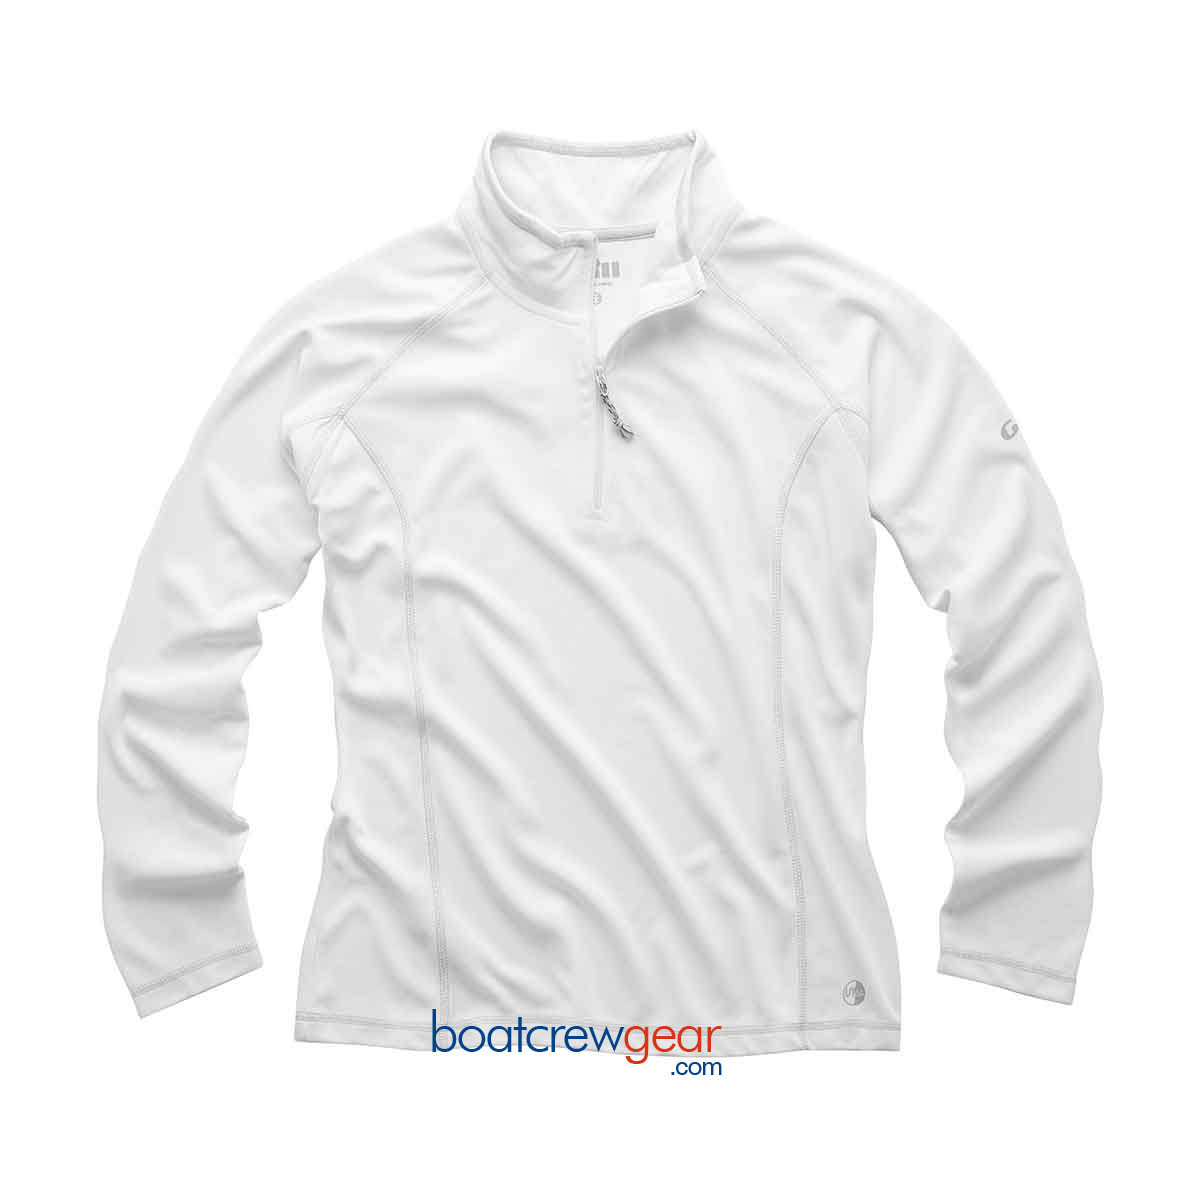 cb63f52537 Gill UV Tec Top 1/4 Zip Women's SPECIAL - Boat Crew Gear